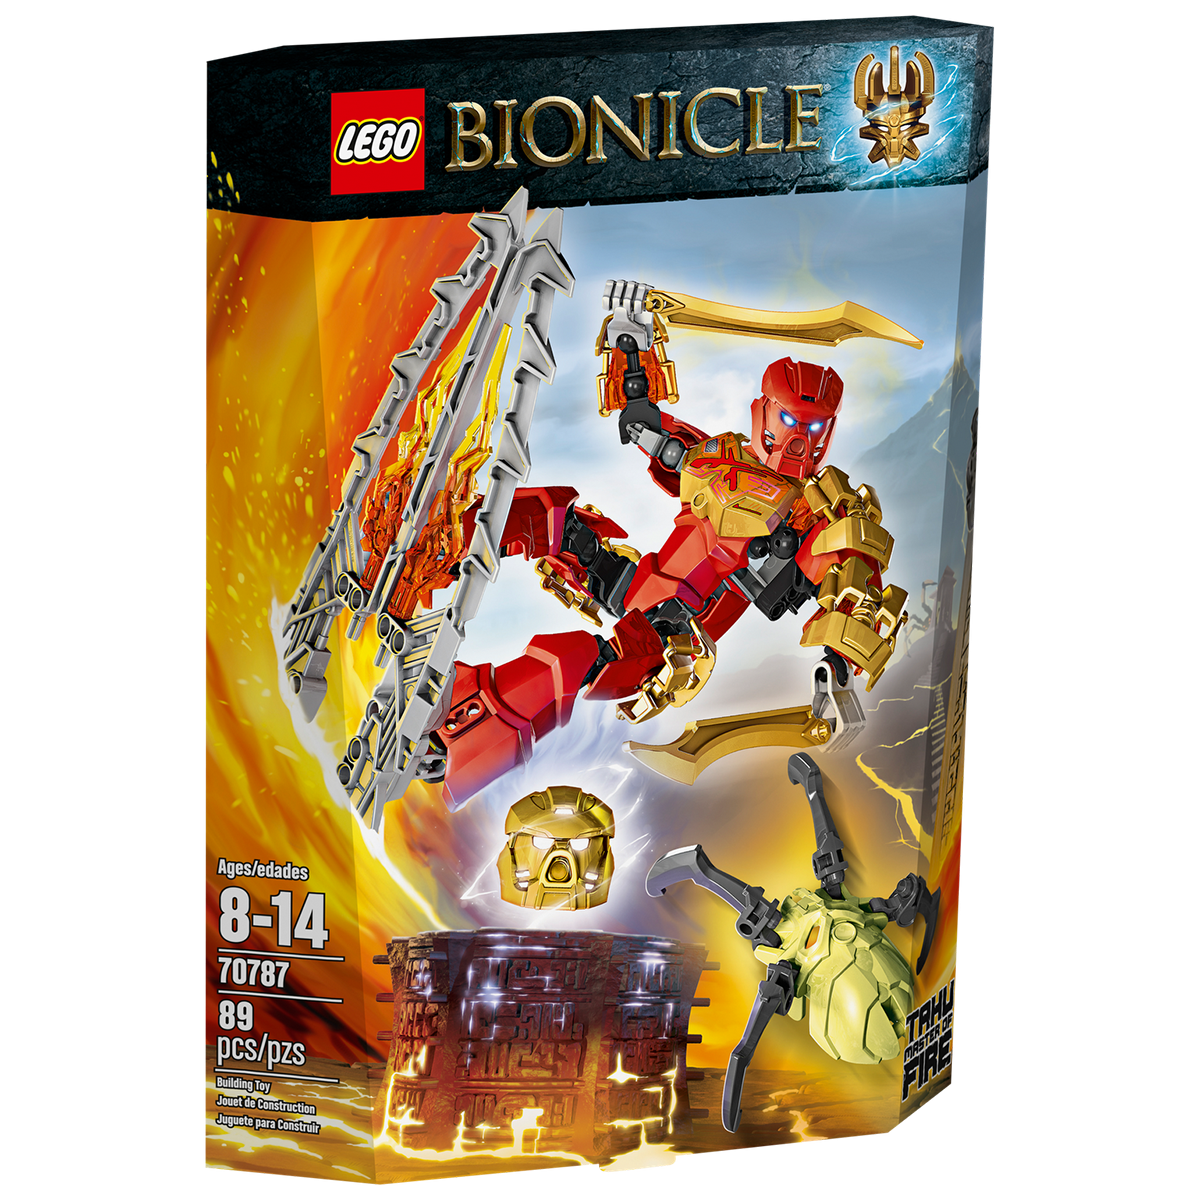 Lego Bionicle 70787 - Than lua Tahu